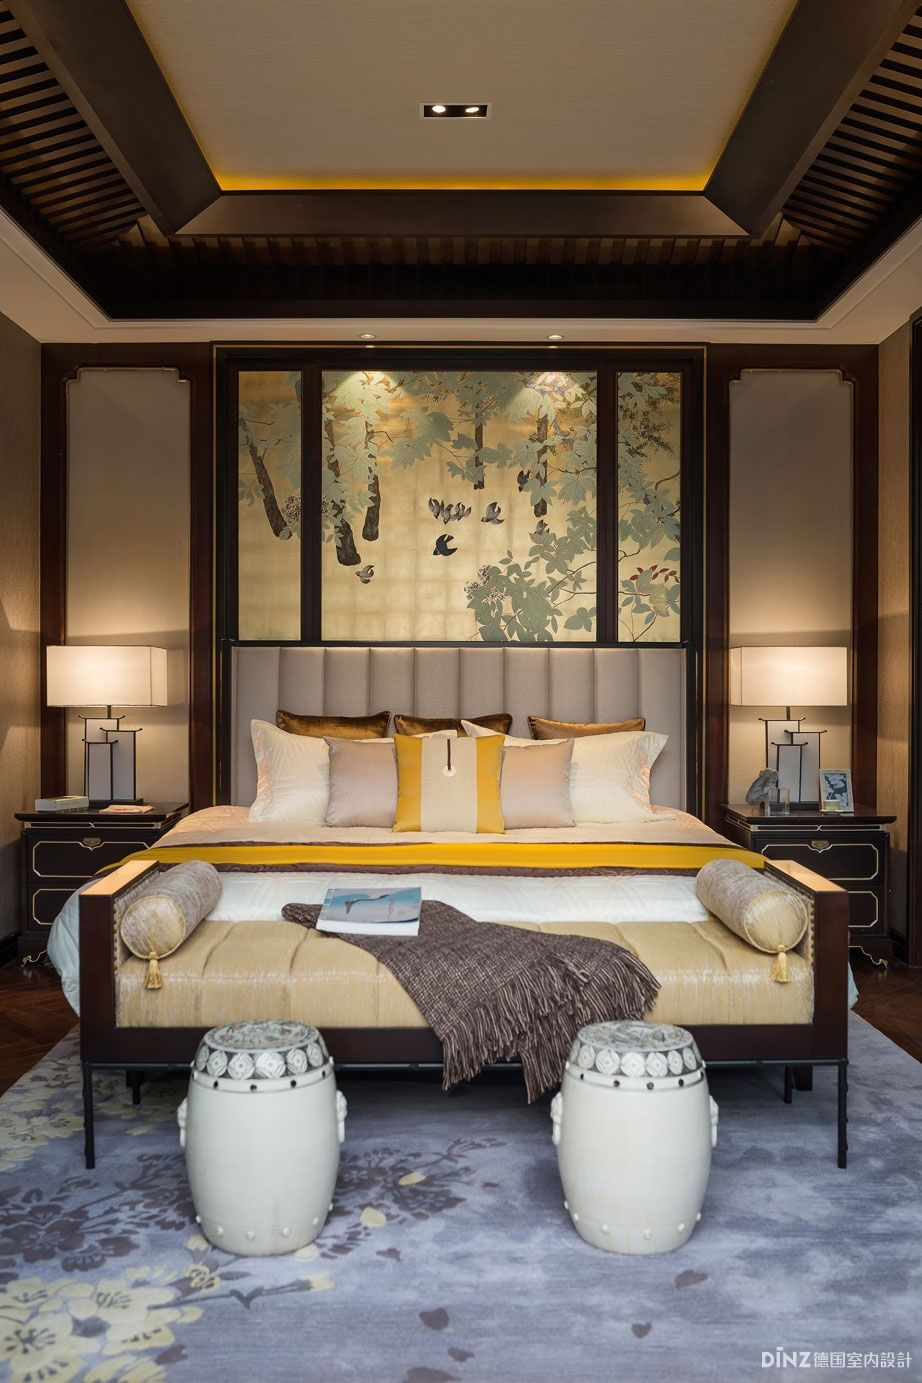 Pin by fm on اثاث صيني in pinterest bedroom bed design and